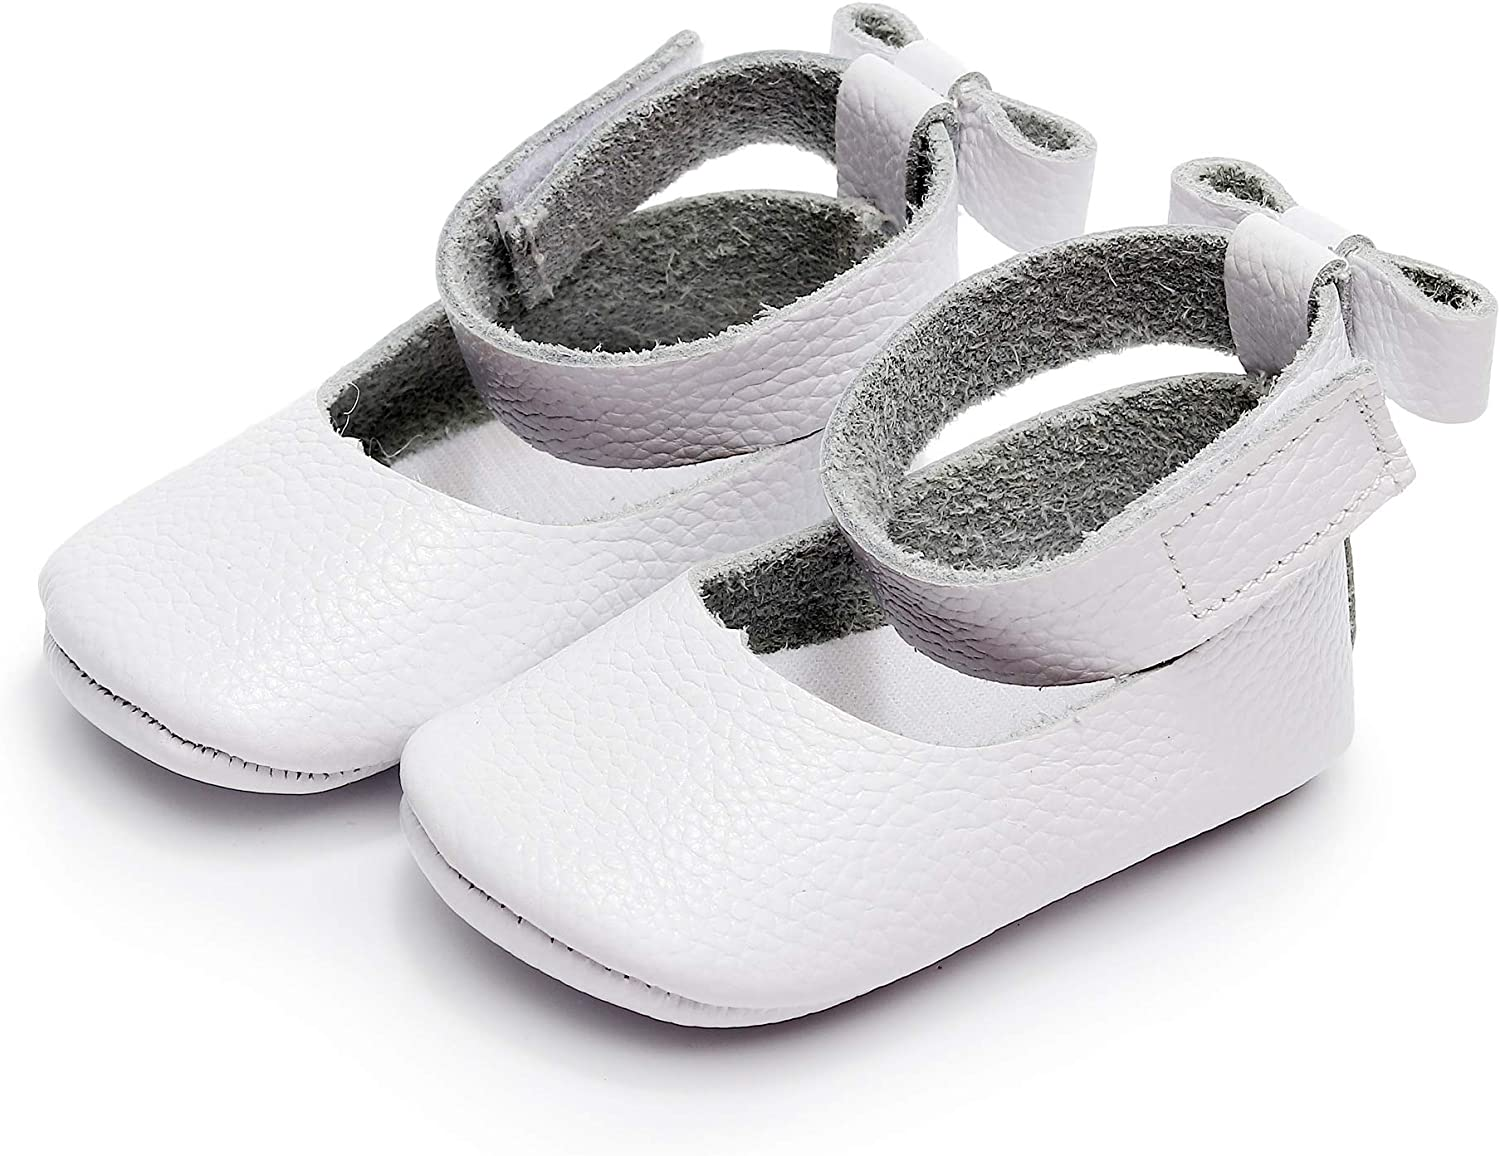 Bebila/ Ankle Strap Genuine Leather Baby Girls Sandals Bowknot Mary Janes Baby Shoes Toddler Moccasins